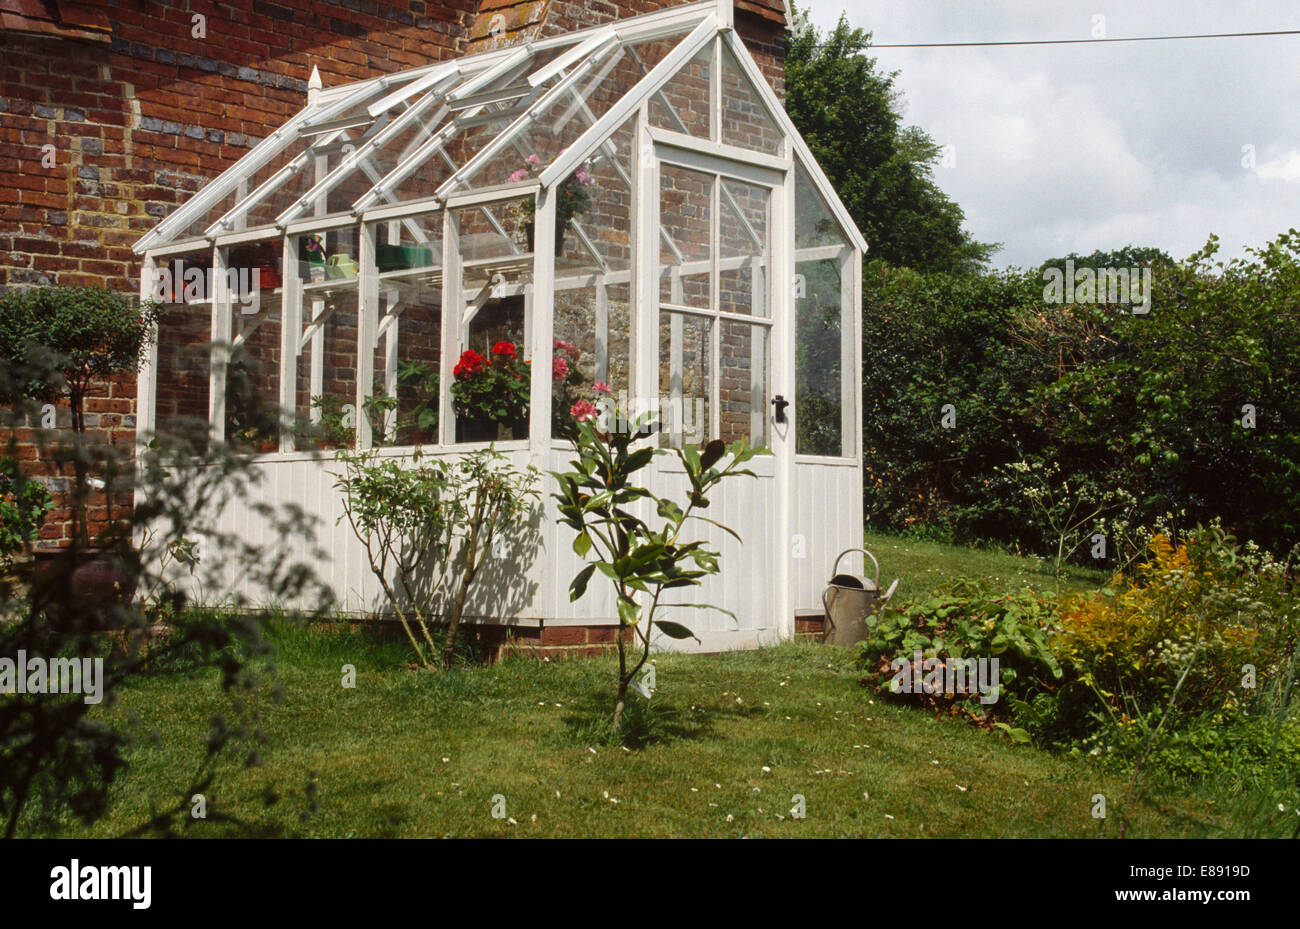 Greenhouse against brick wall of house with large garden